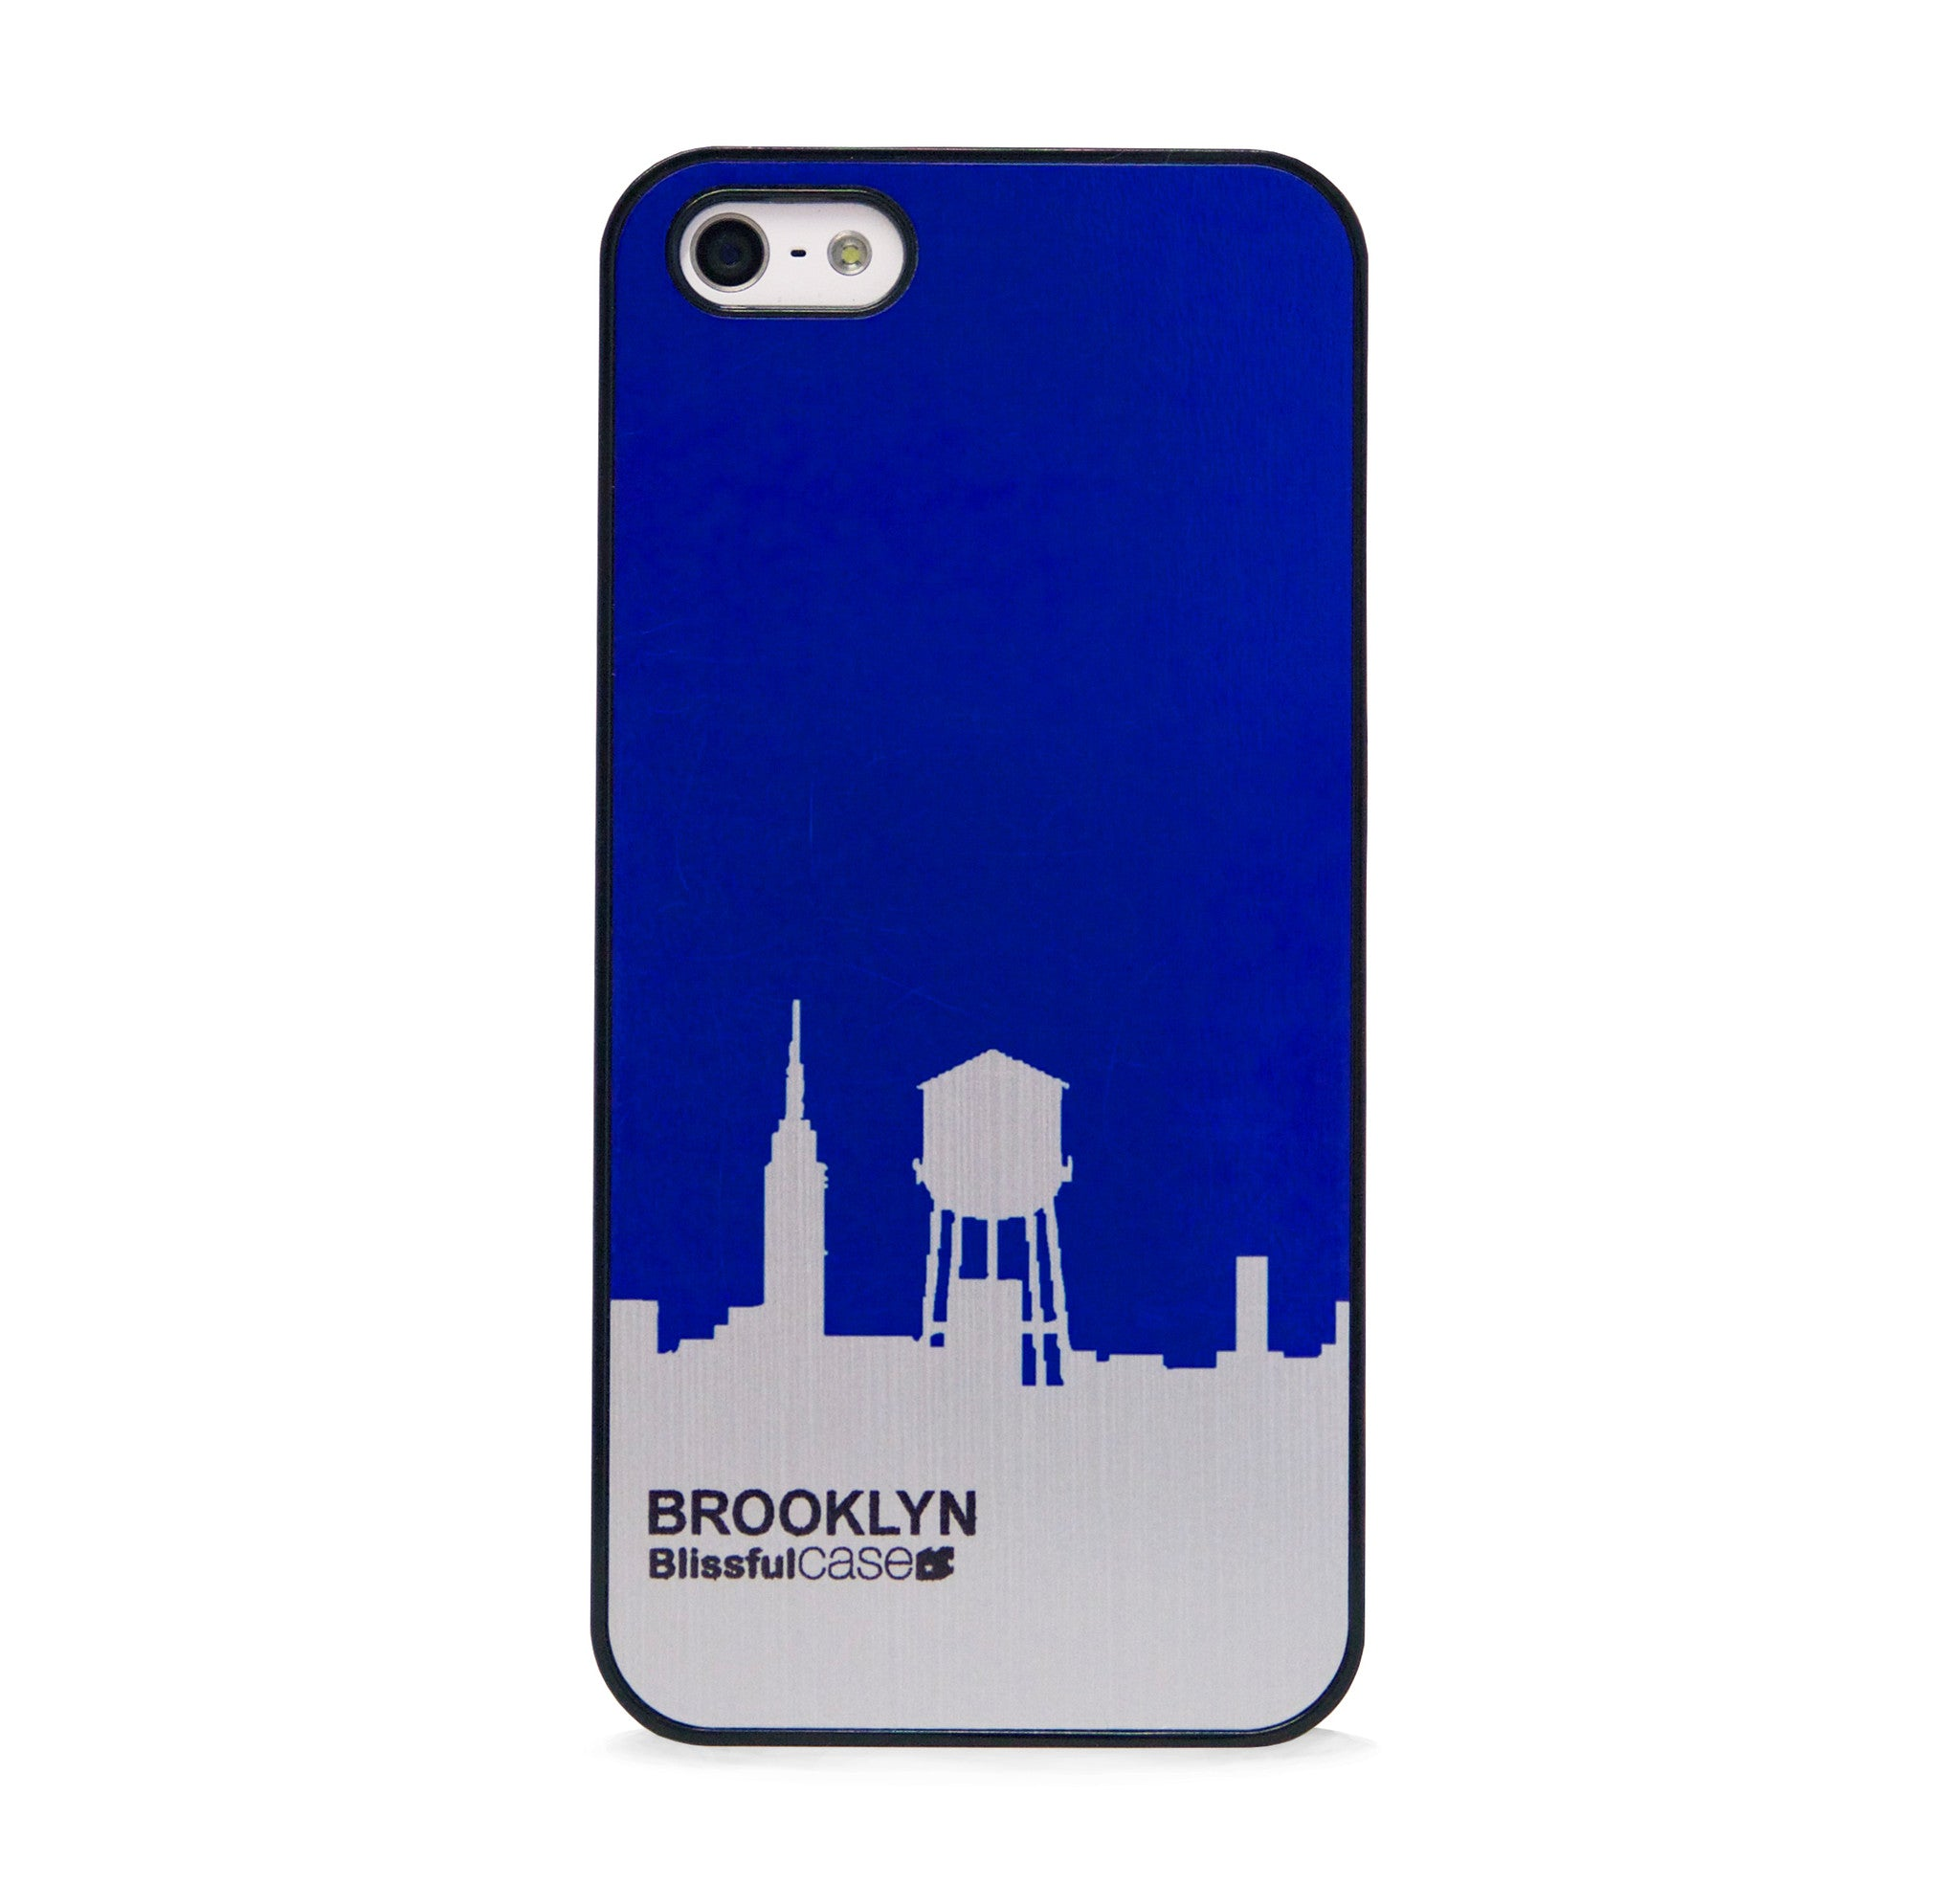 BROOKLYN BLUE IPHONE 5/5S CASE